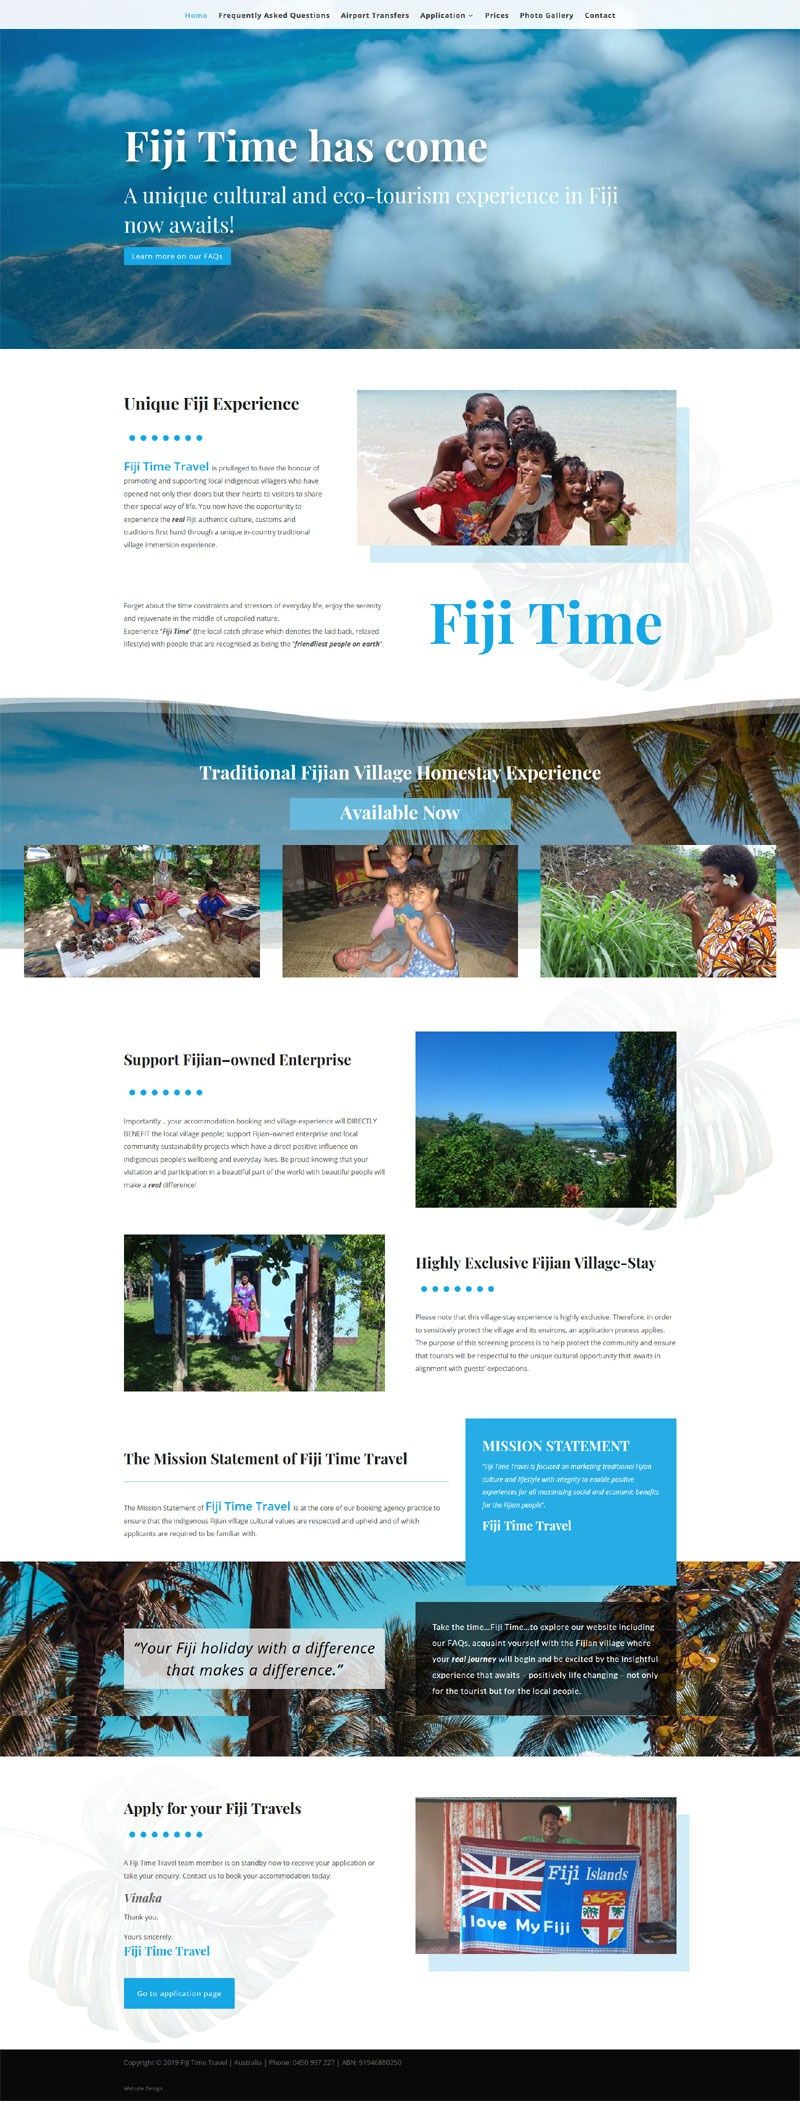 website design for fiji time travel agency cultural eco-tourism